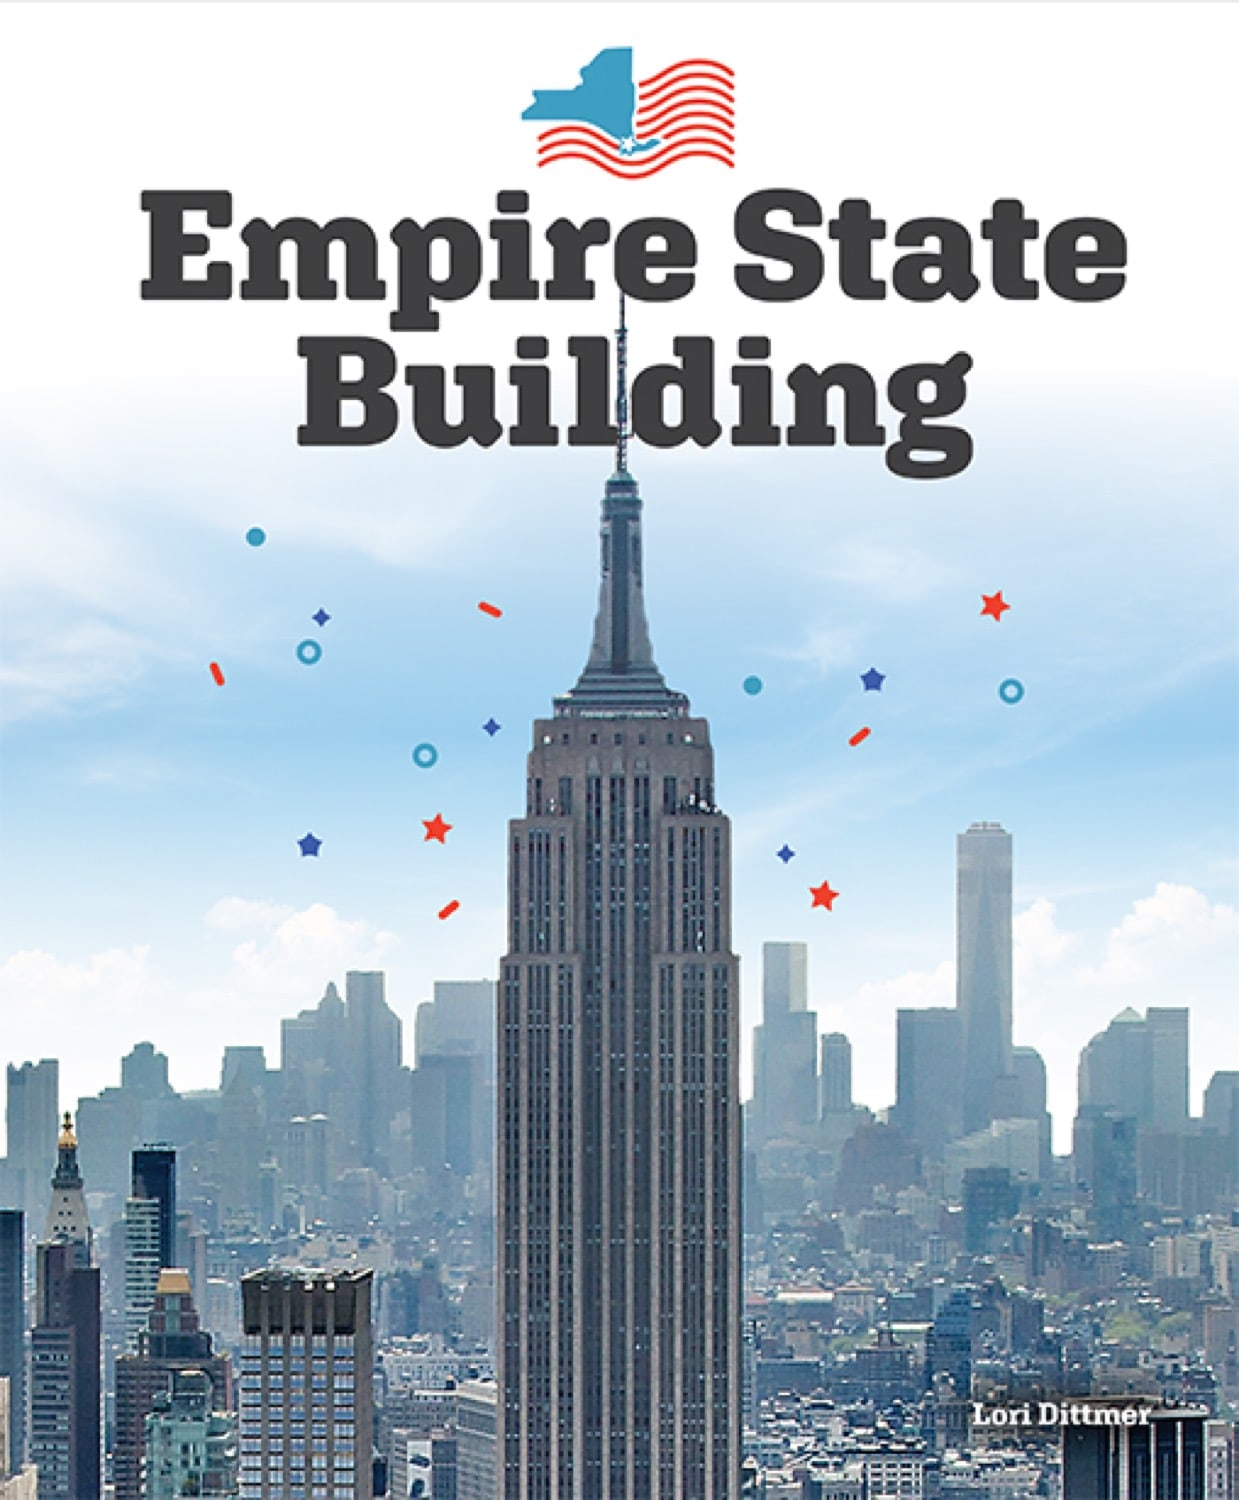 Landmarks of America: Empire State Building